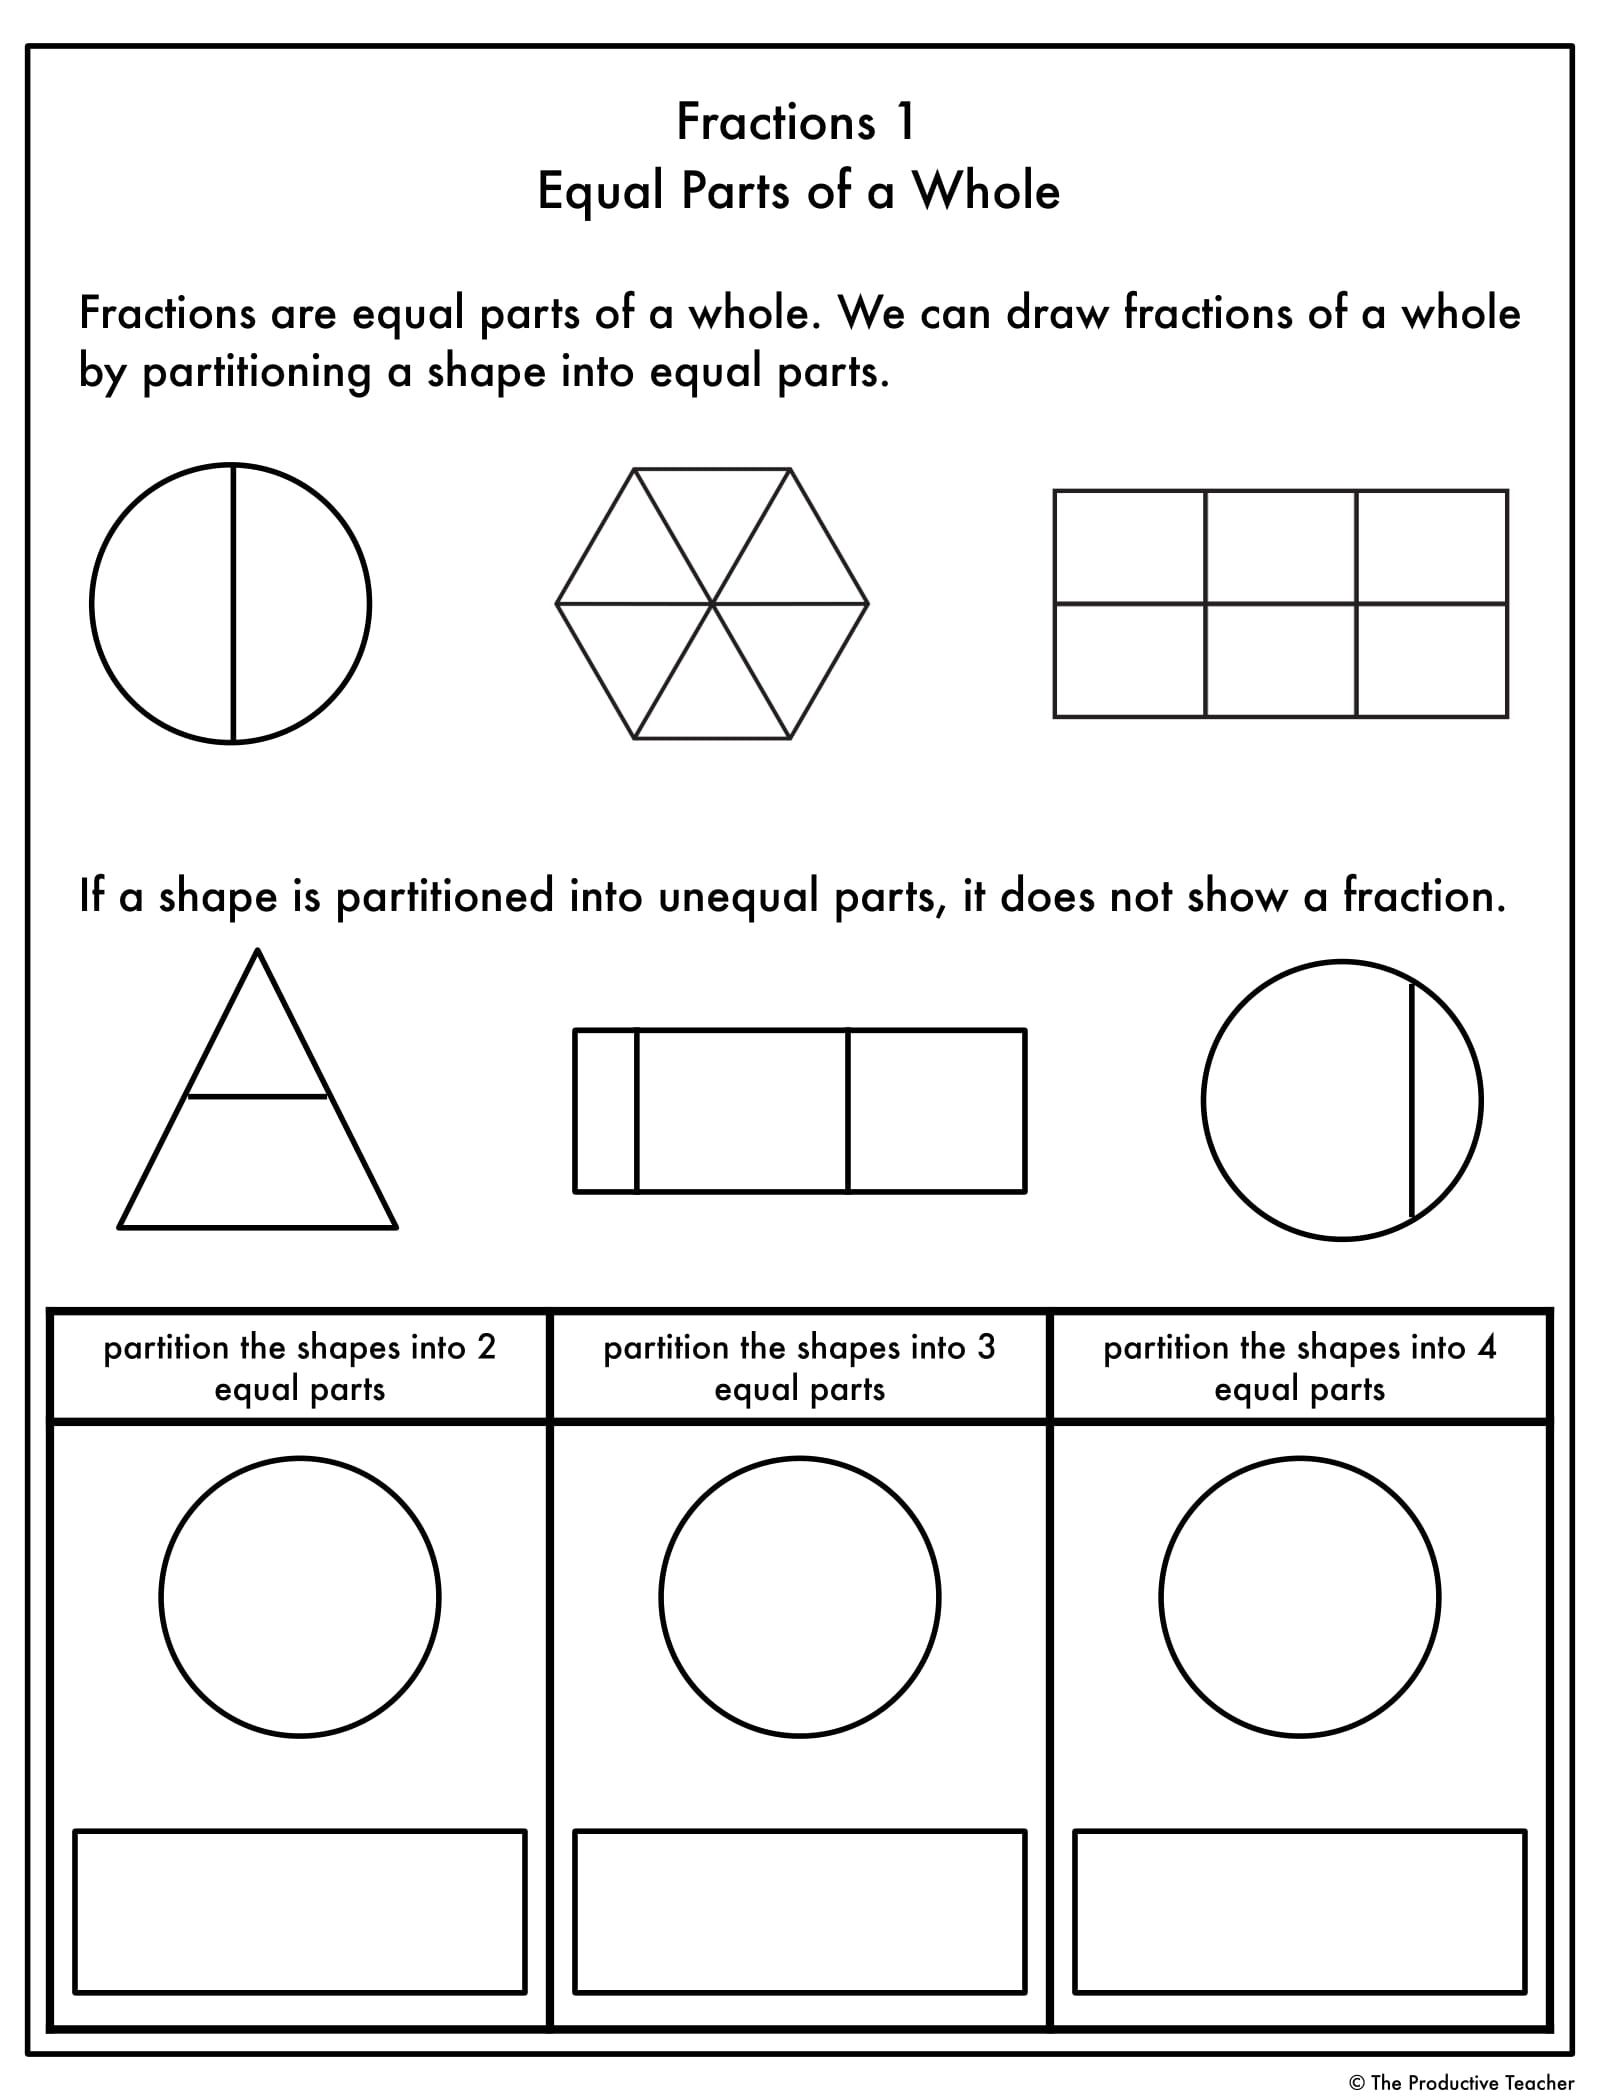 Fractions Progression Worksheets